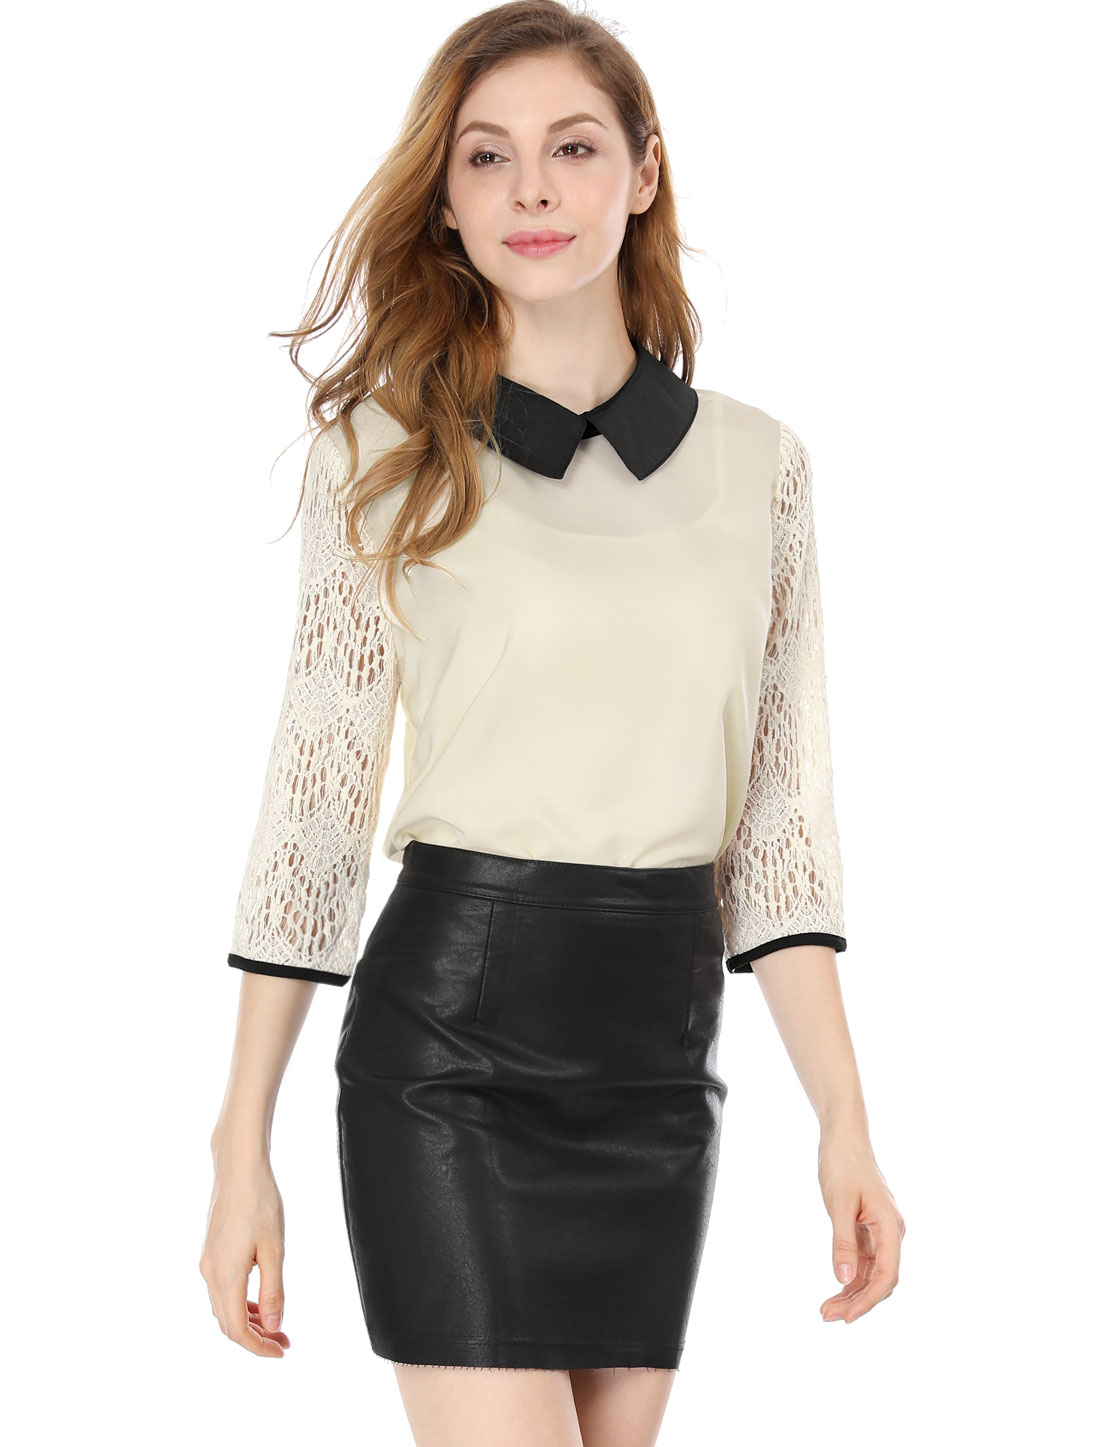 Women Stylish Peter Pan Collar Crochet Hollow Sleeve Beige Blouse L